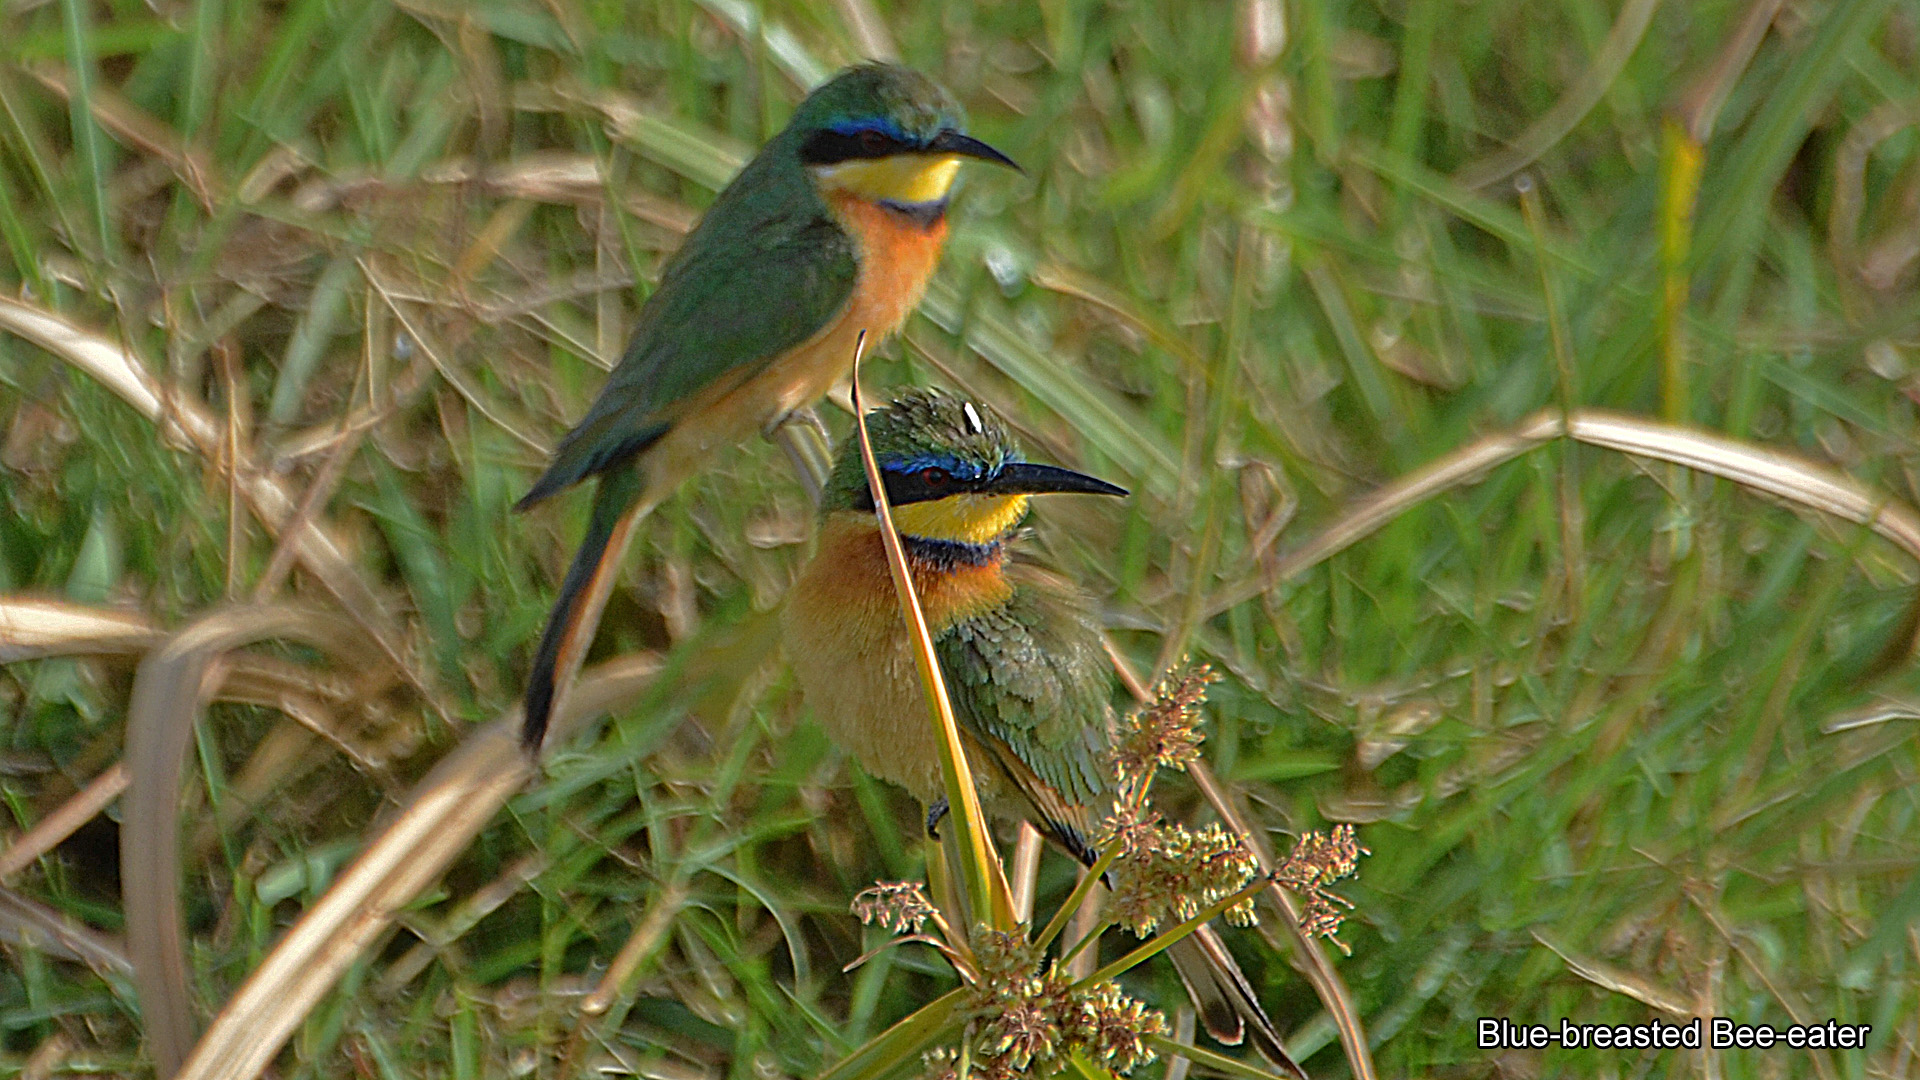 5e, Blue-breasted Bee-eater